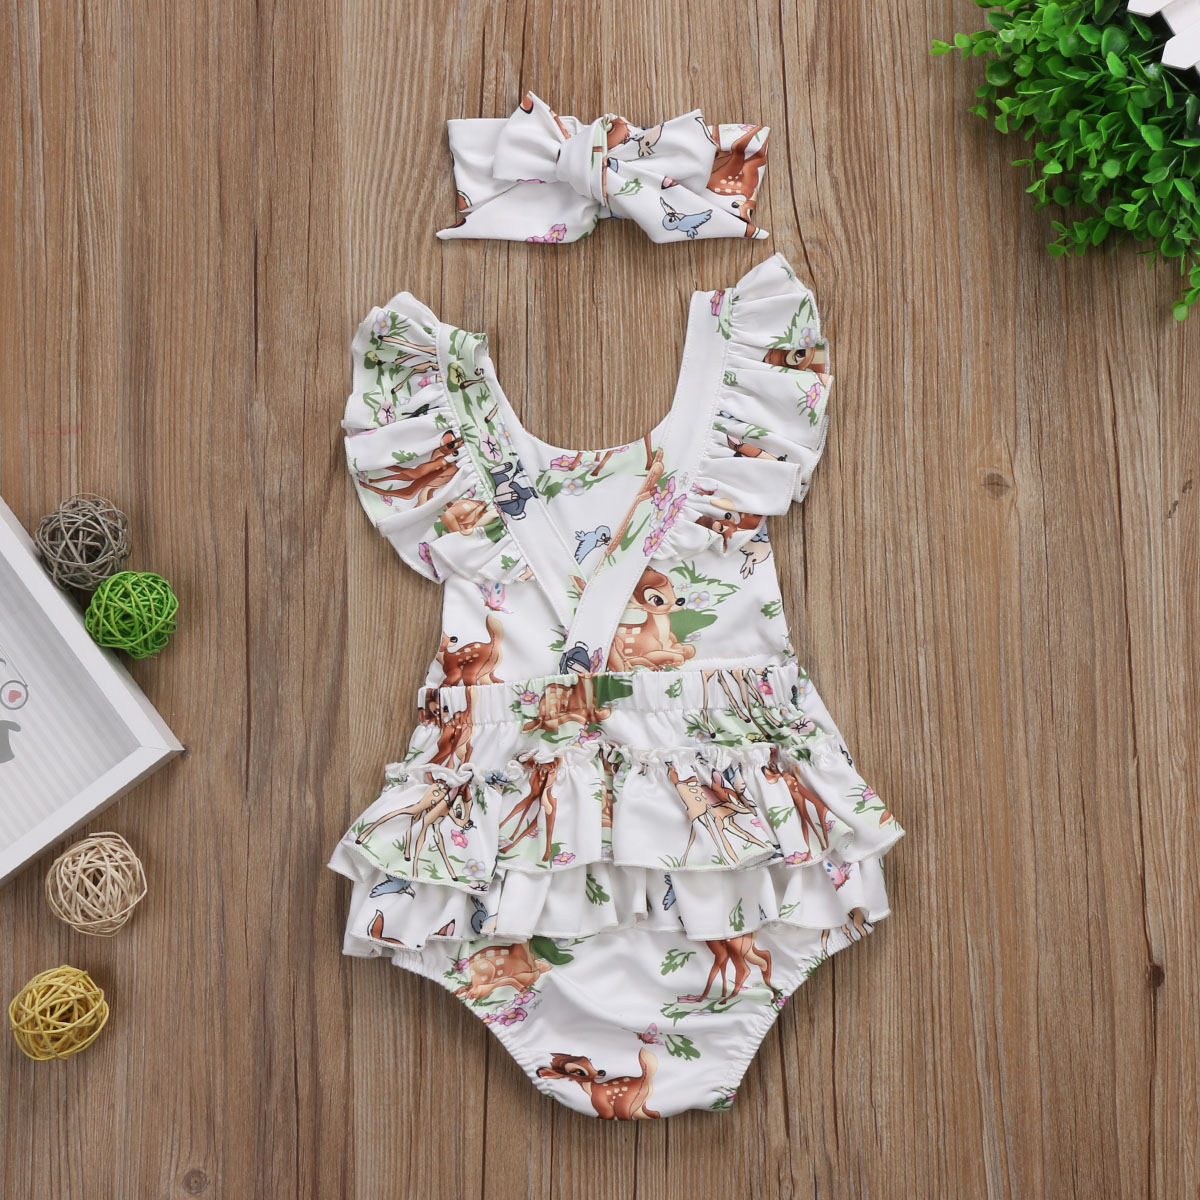 5ee9c4a05b5 Bambi Romper · Isabella Iris Boutique · Online Store Powered by Storenvy